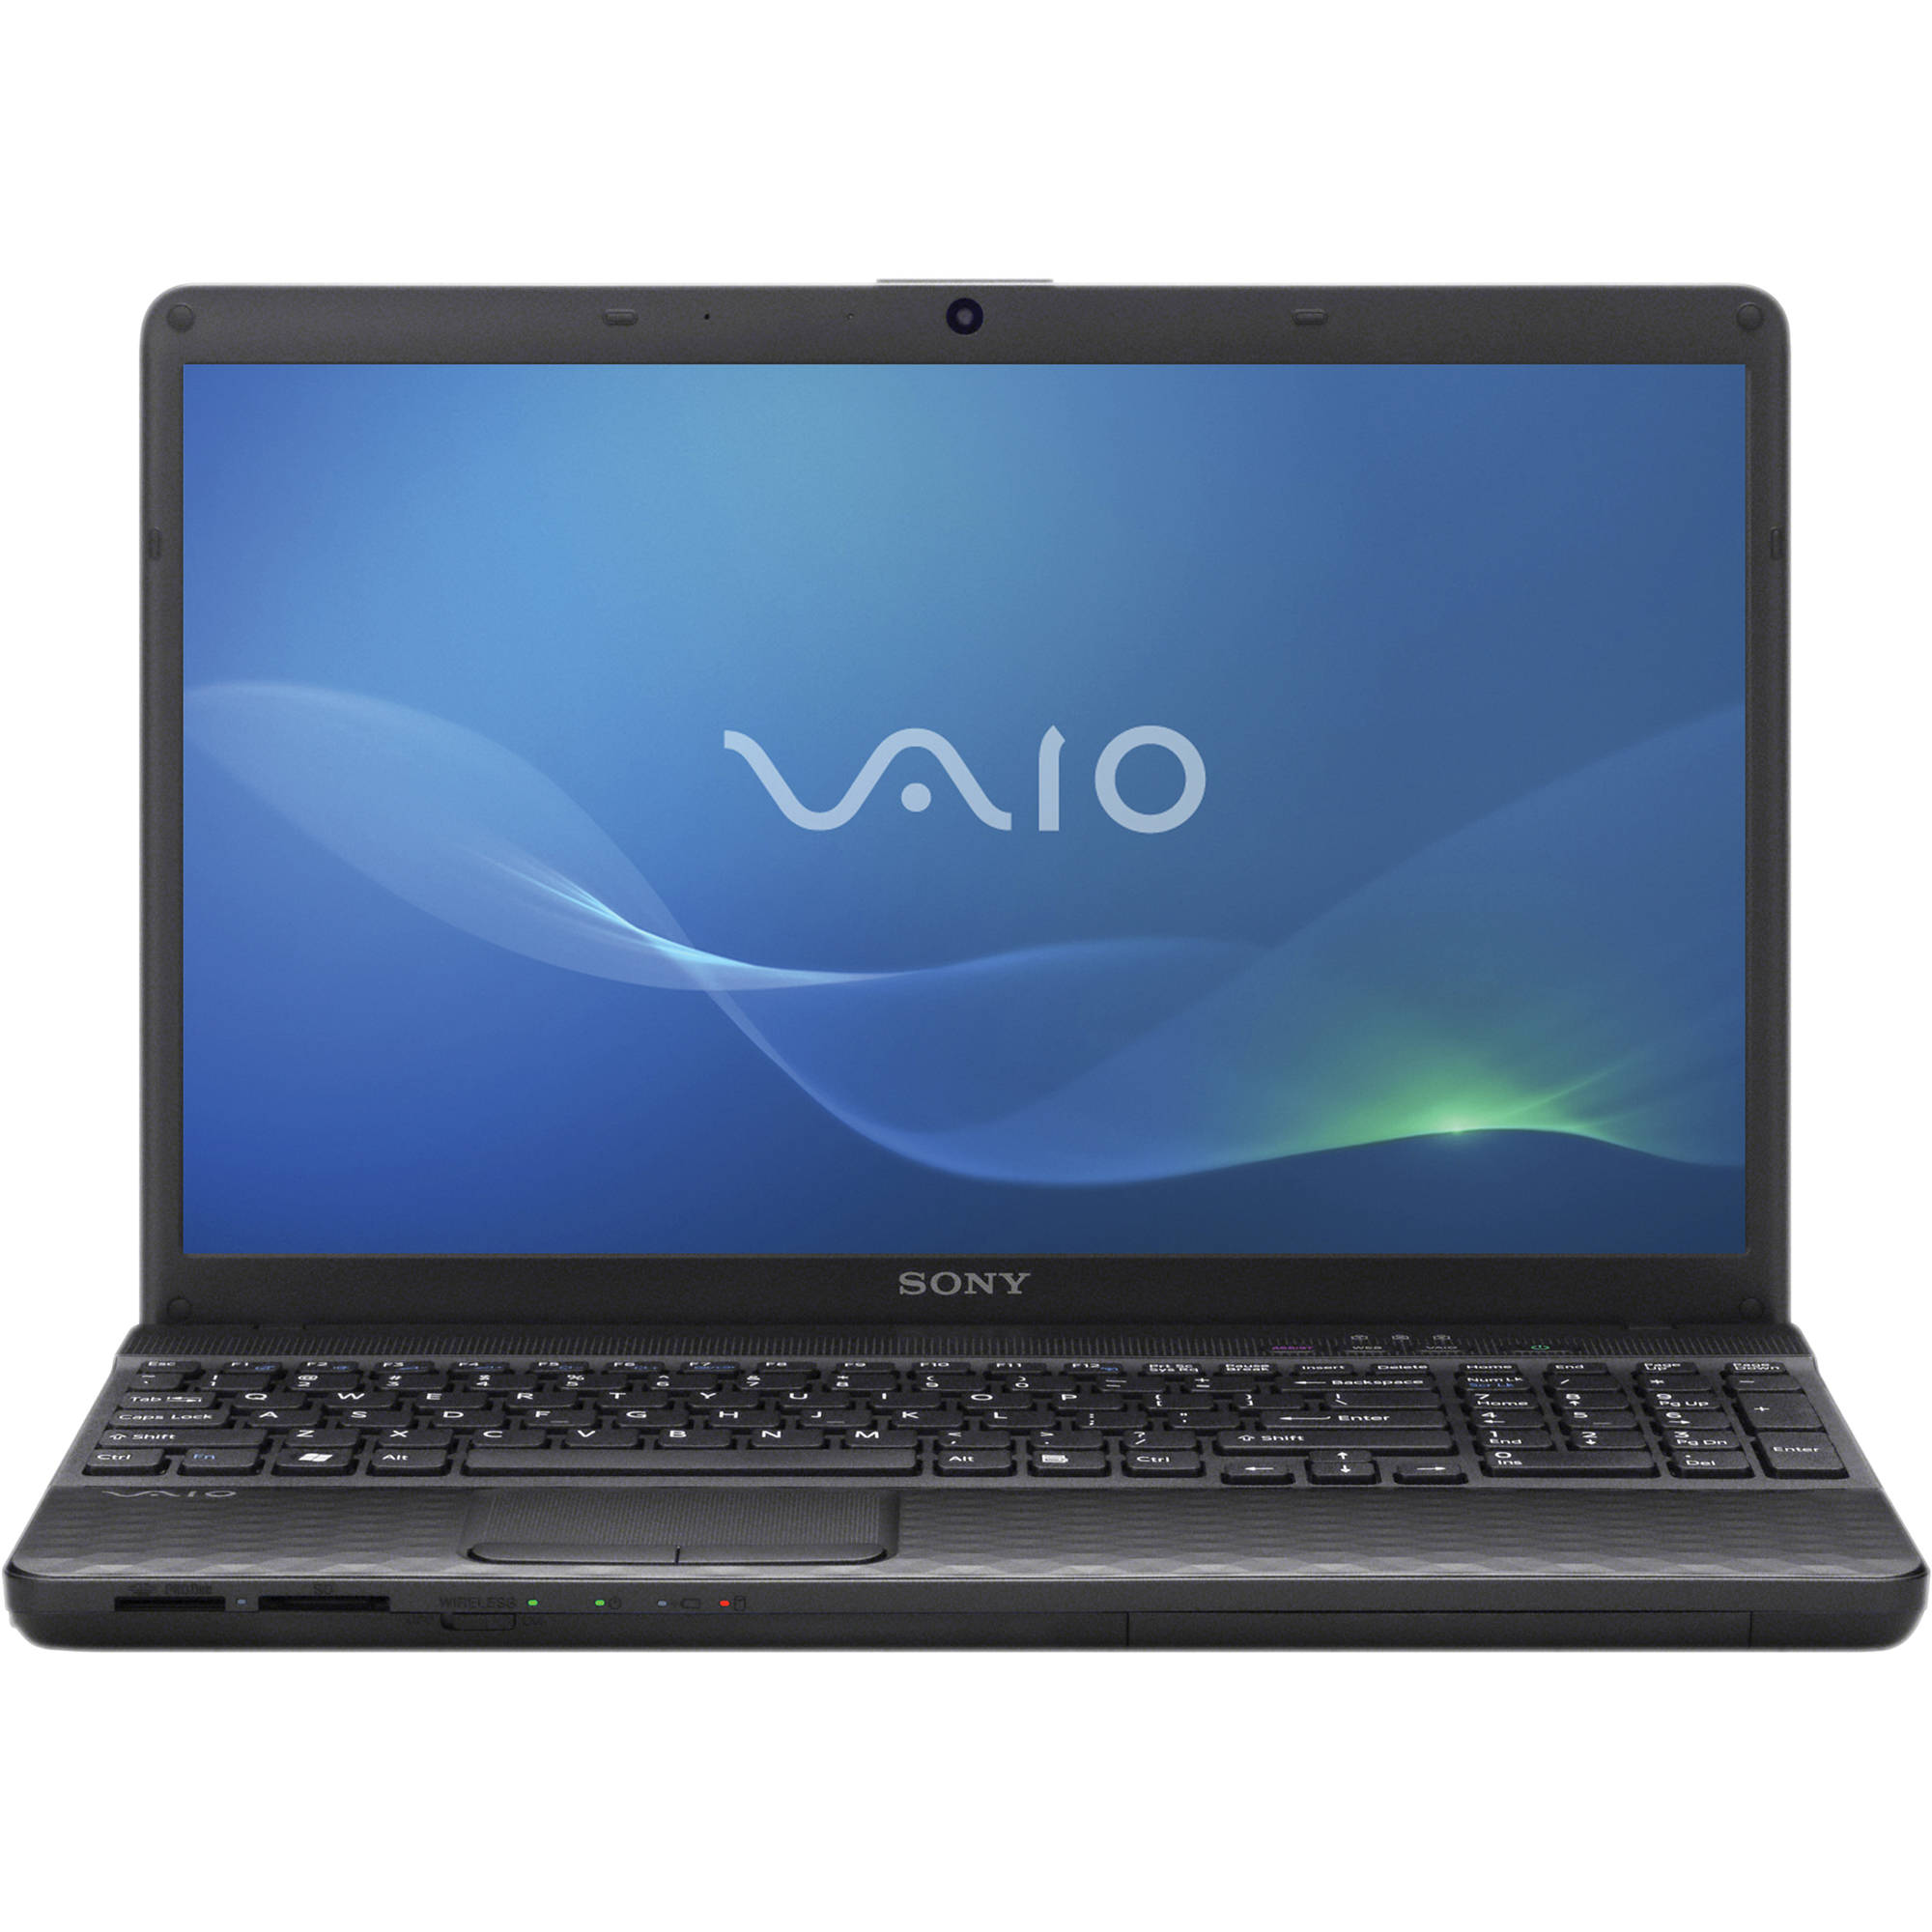 Sony Vaio VPCEL13FX/B Windows 7